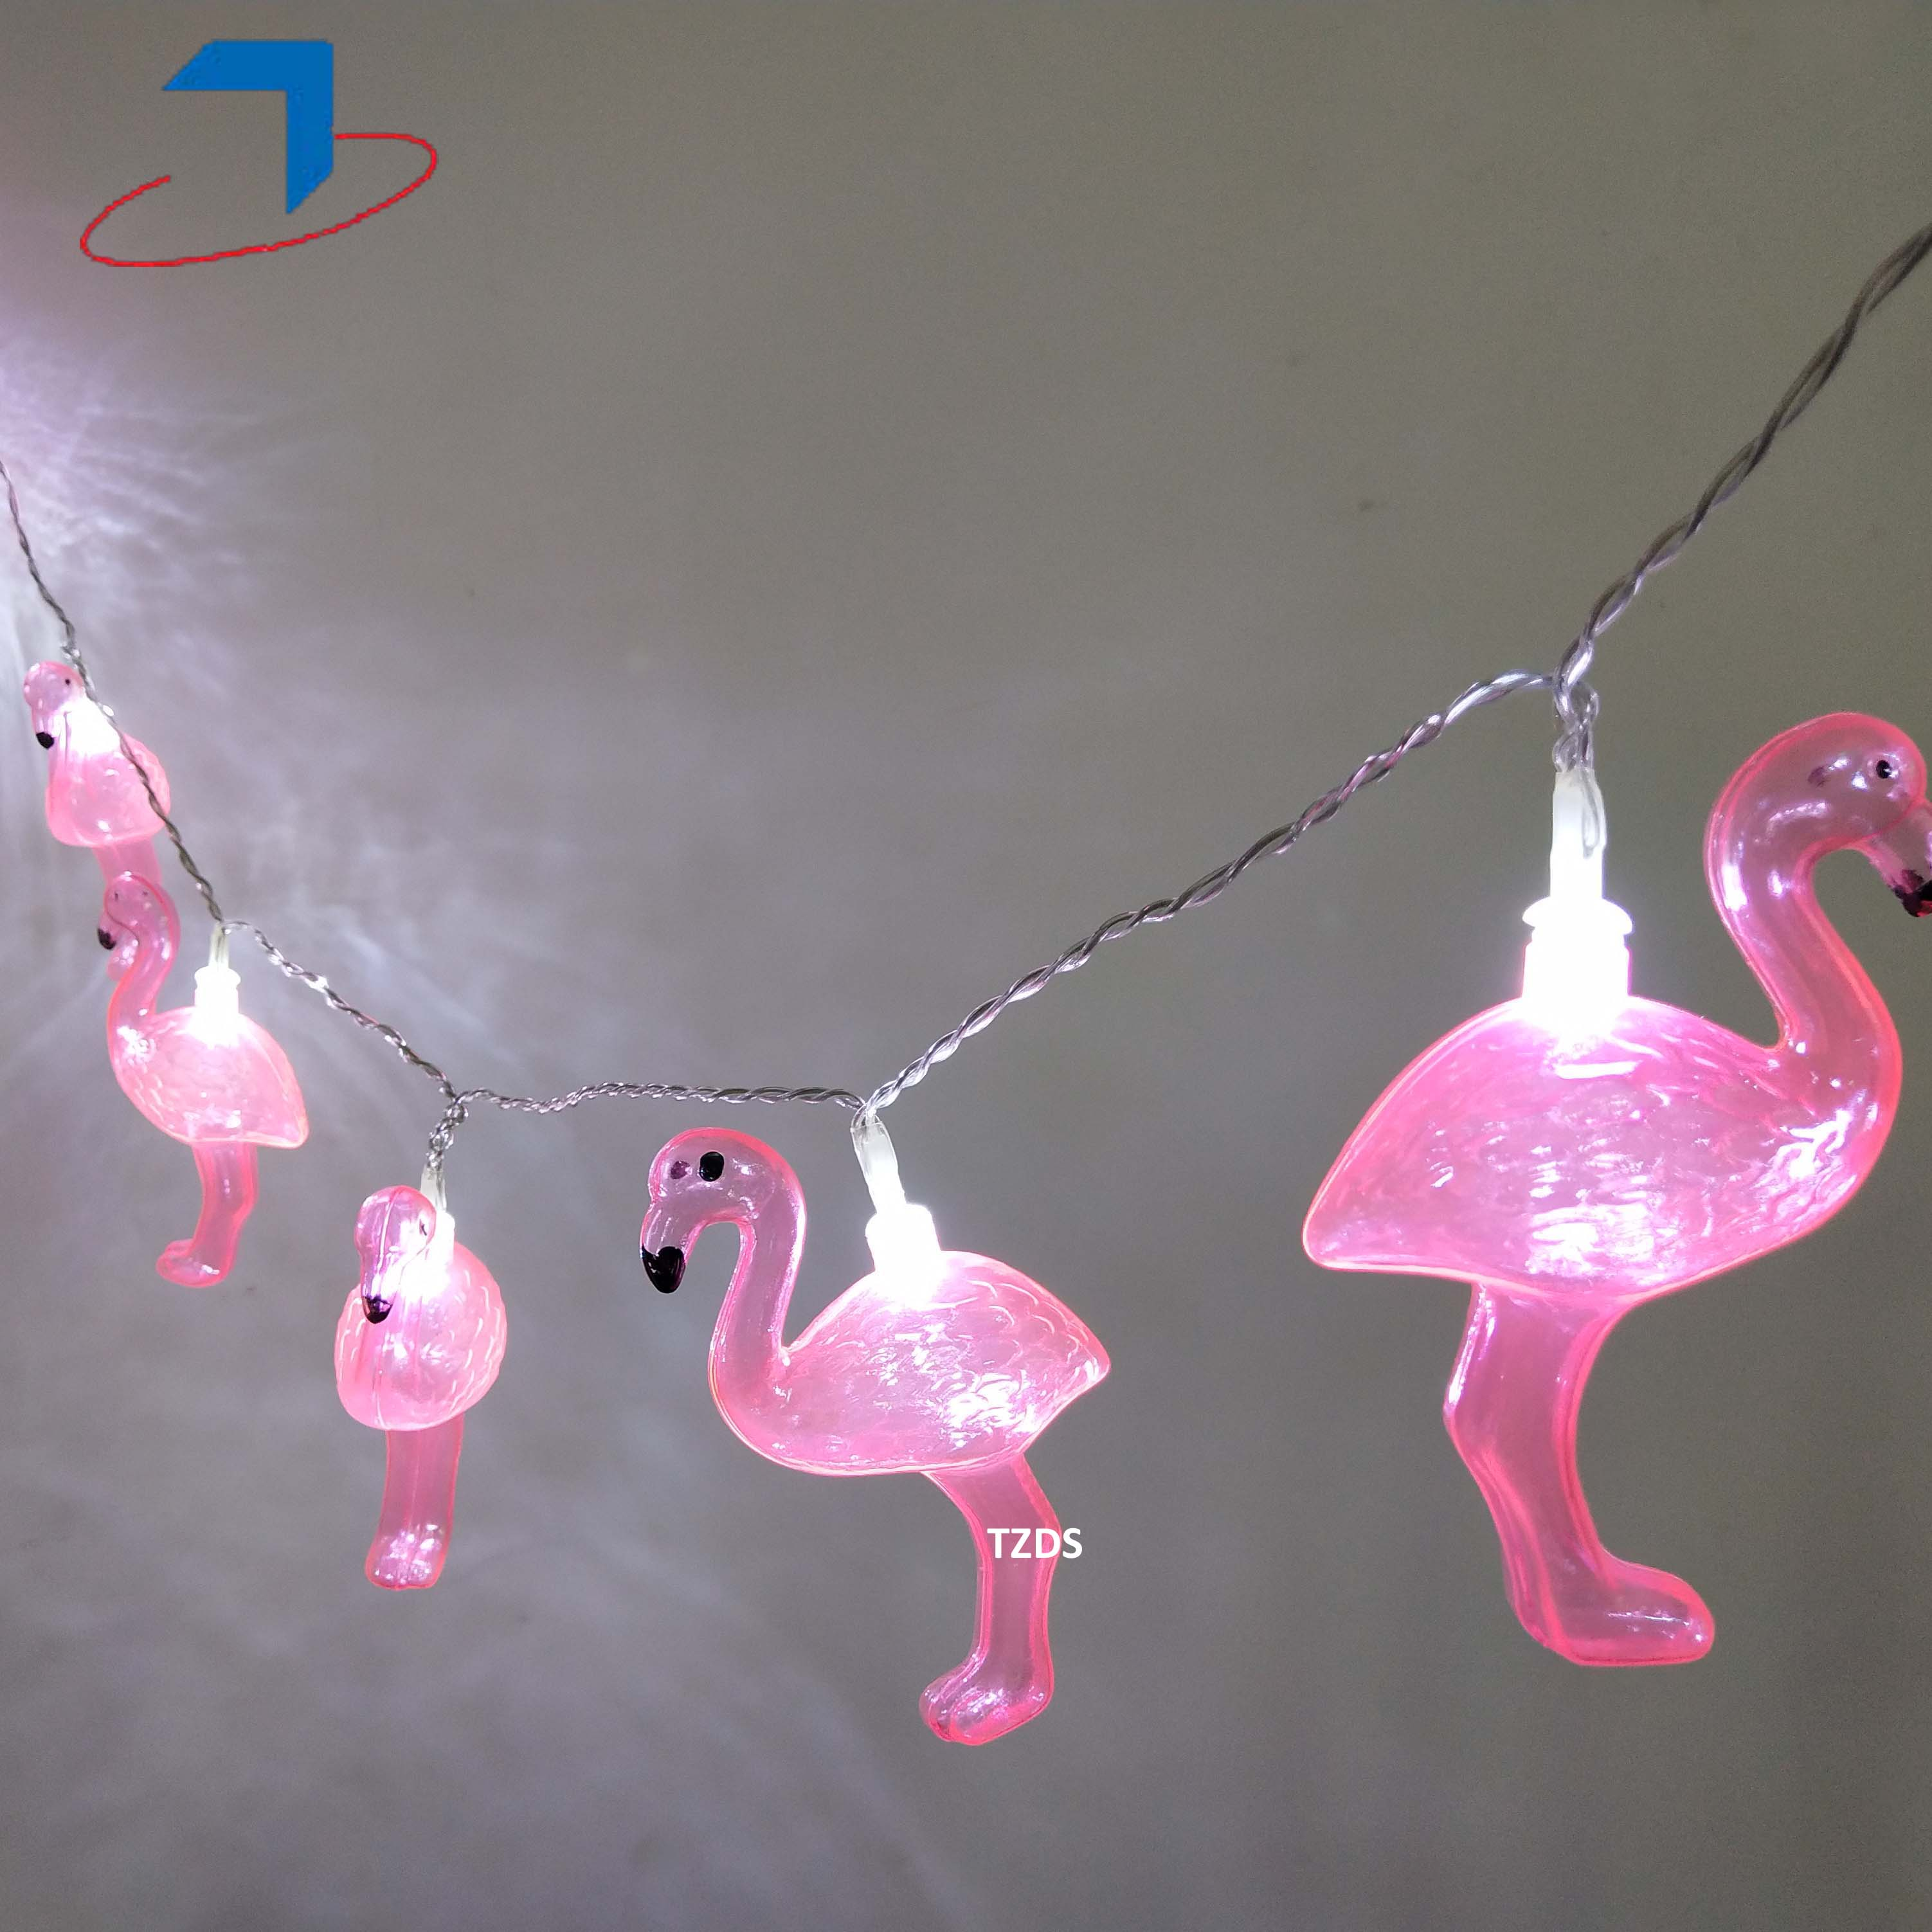 10 LEDS Plastic Fairy Flamingo Decoration Holiday String Lights Pink For Indoor Party Baby Shower Wedding Bedroom Living Room